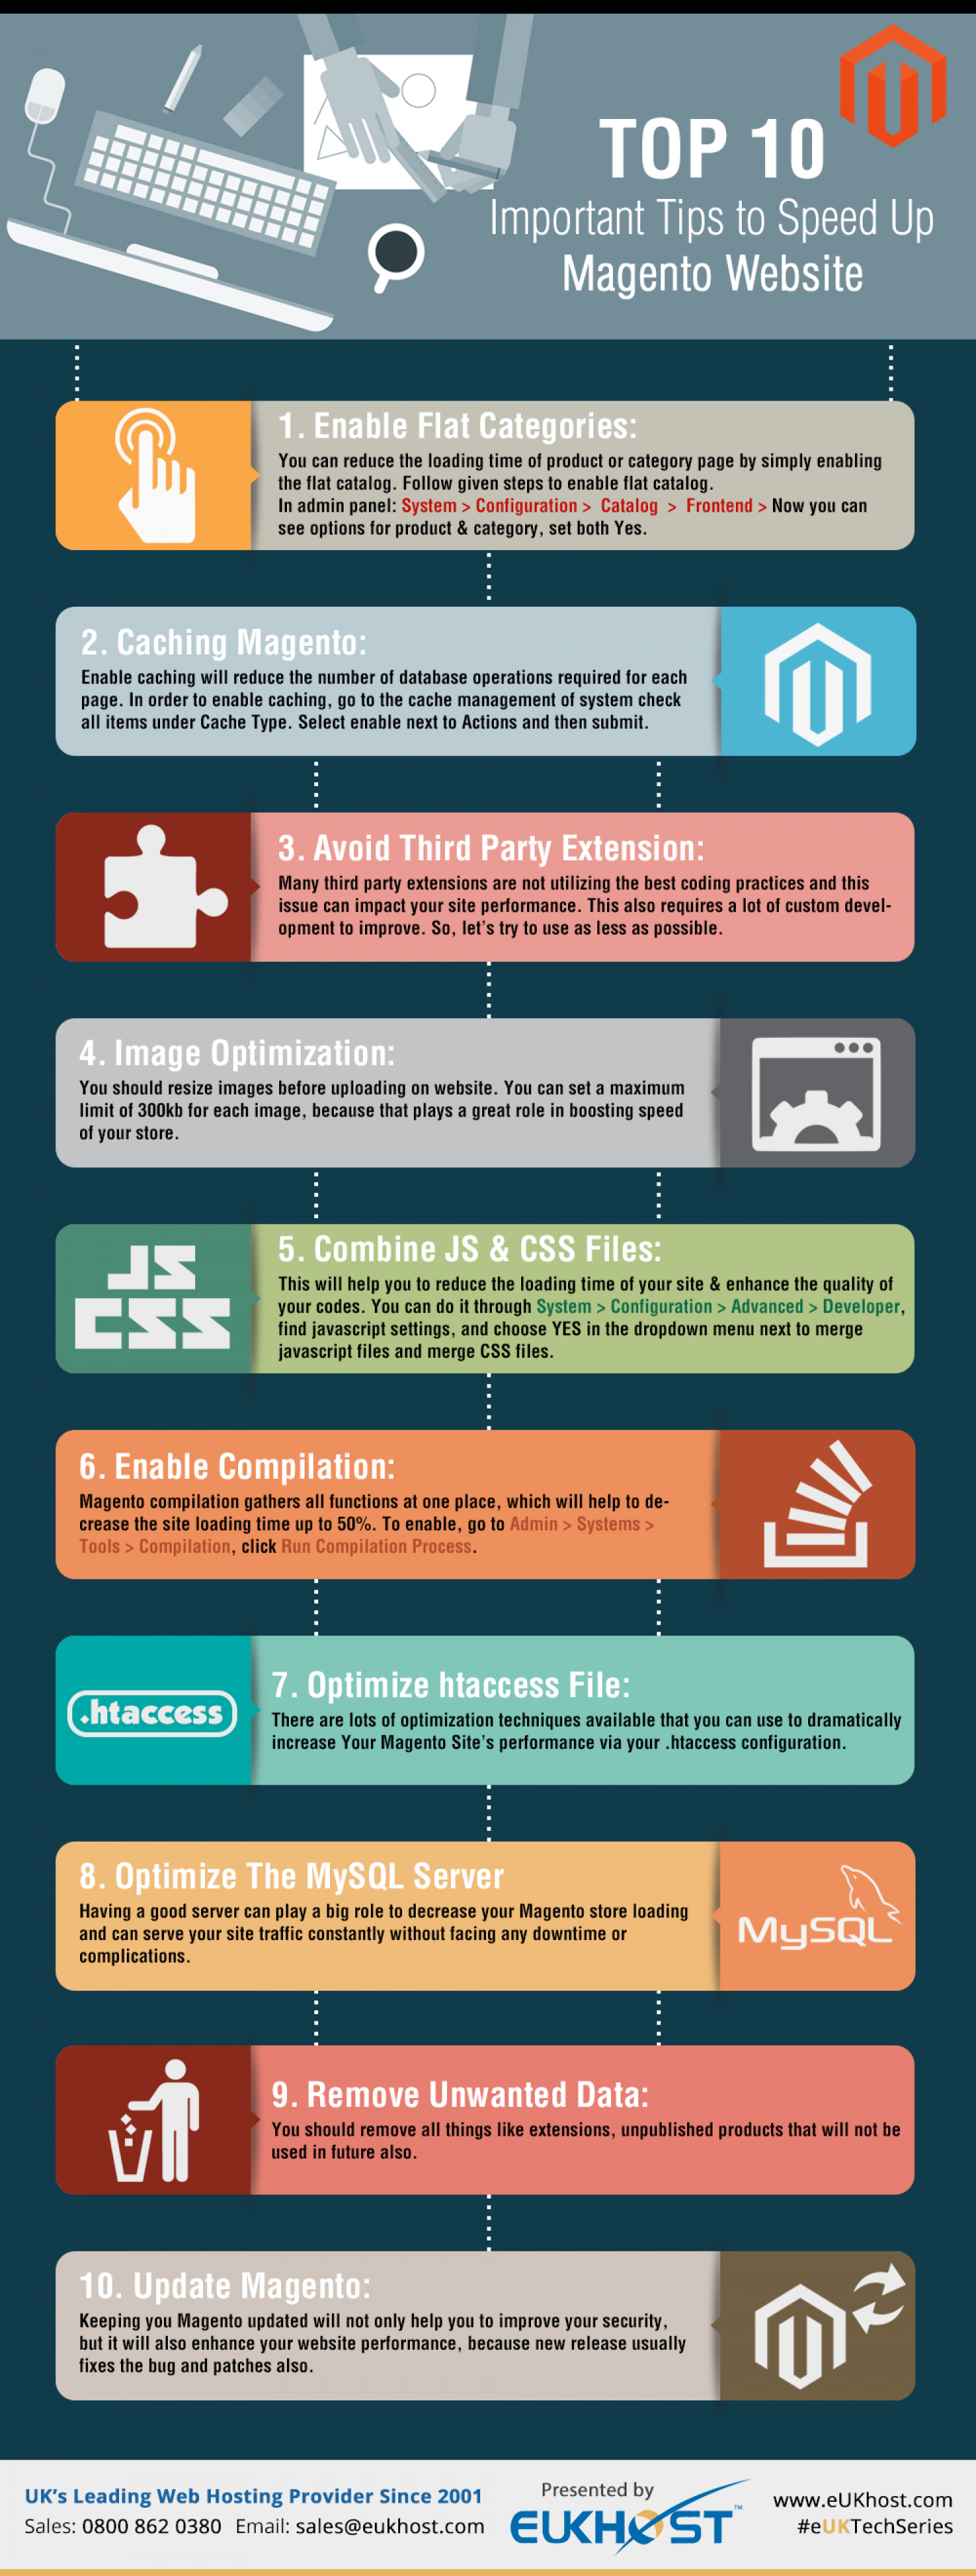 Top 10 Important Tips to Speed Up Magento Website Infographic